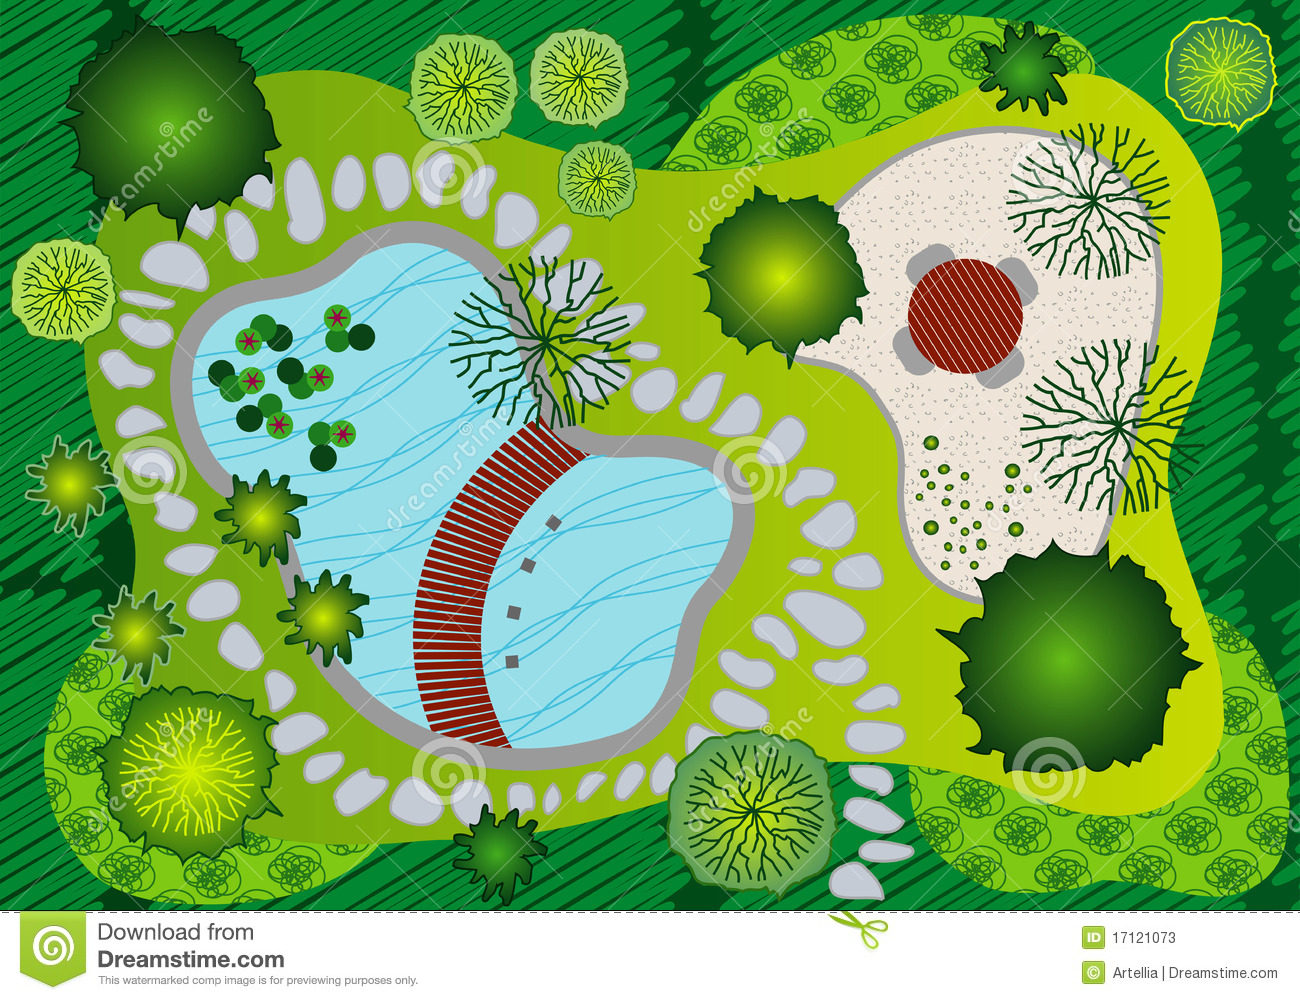 free garden design clipart - photo #40